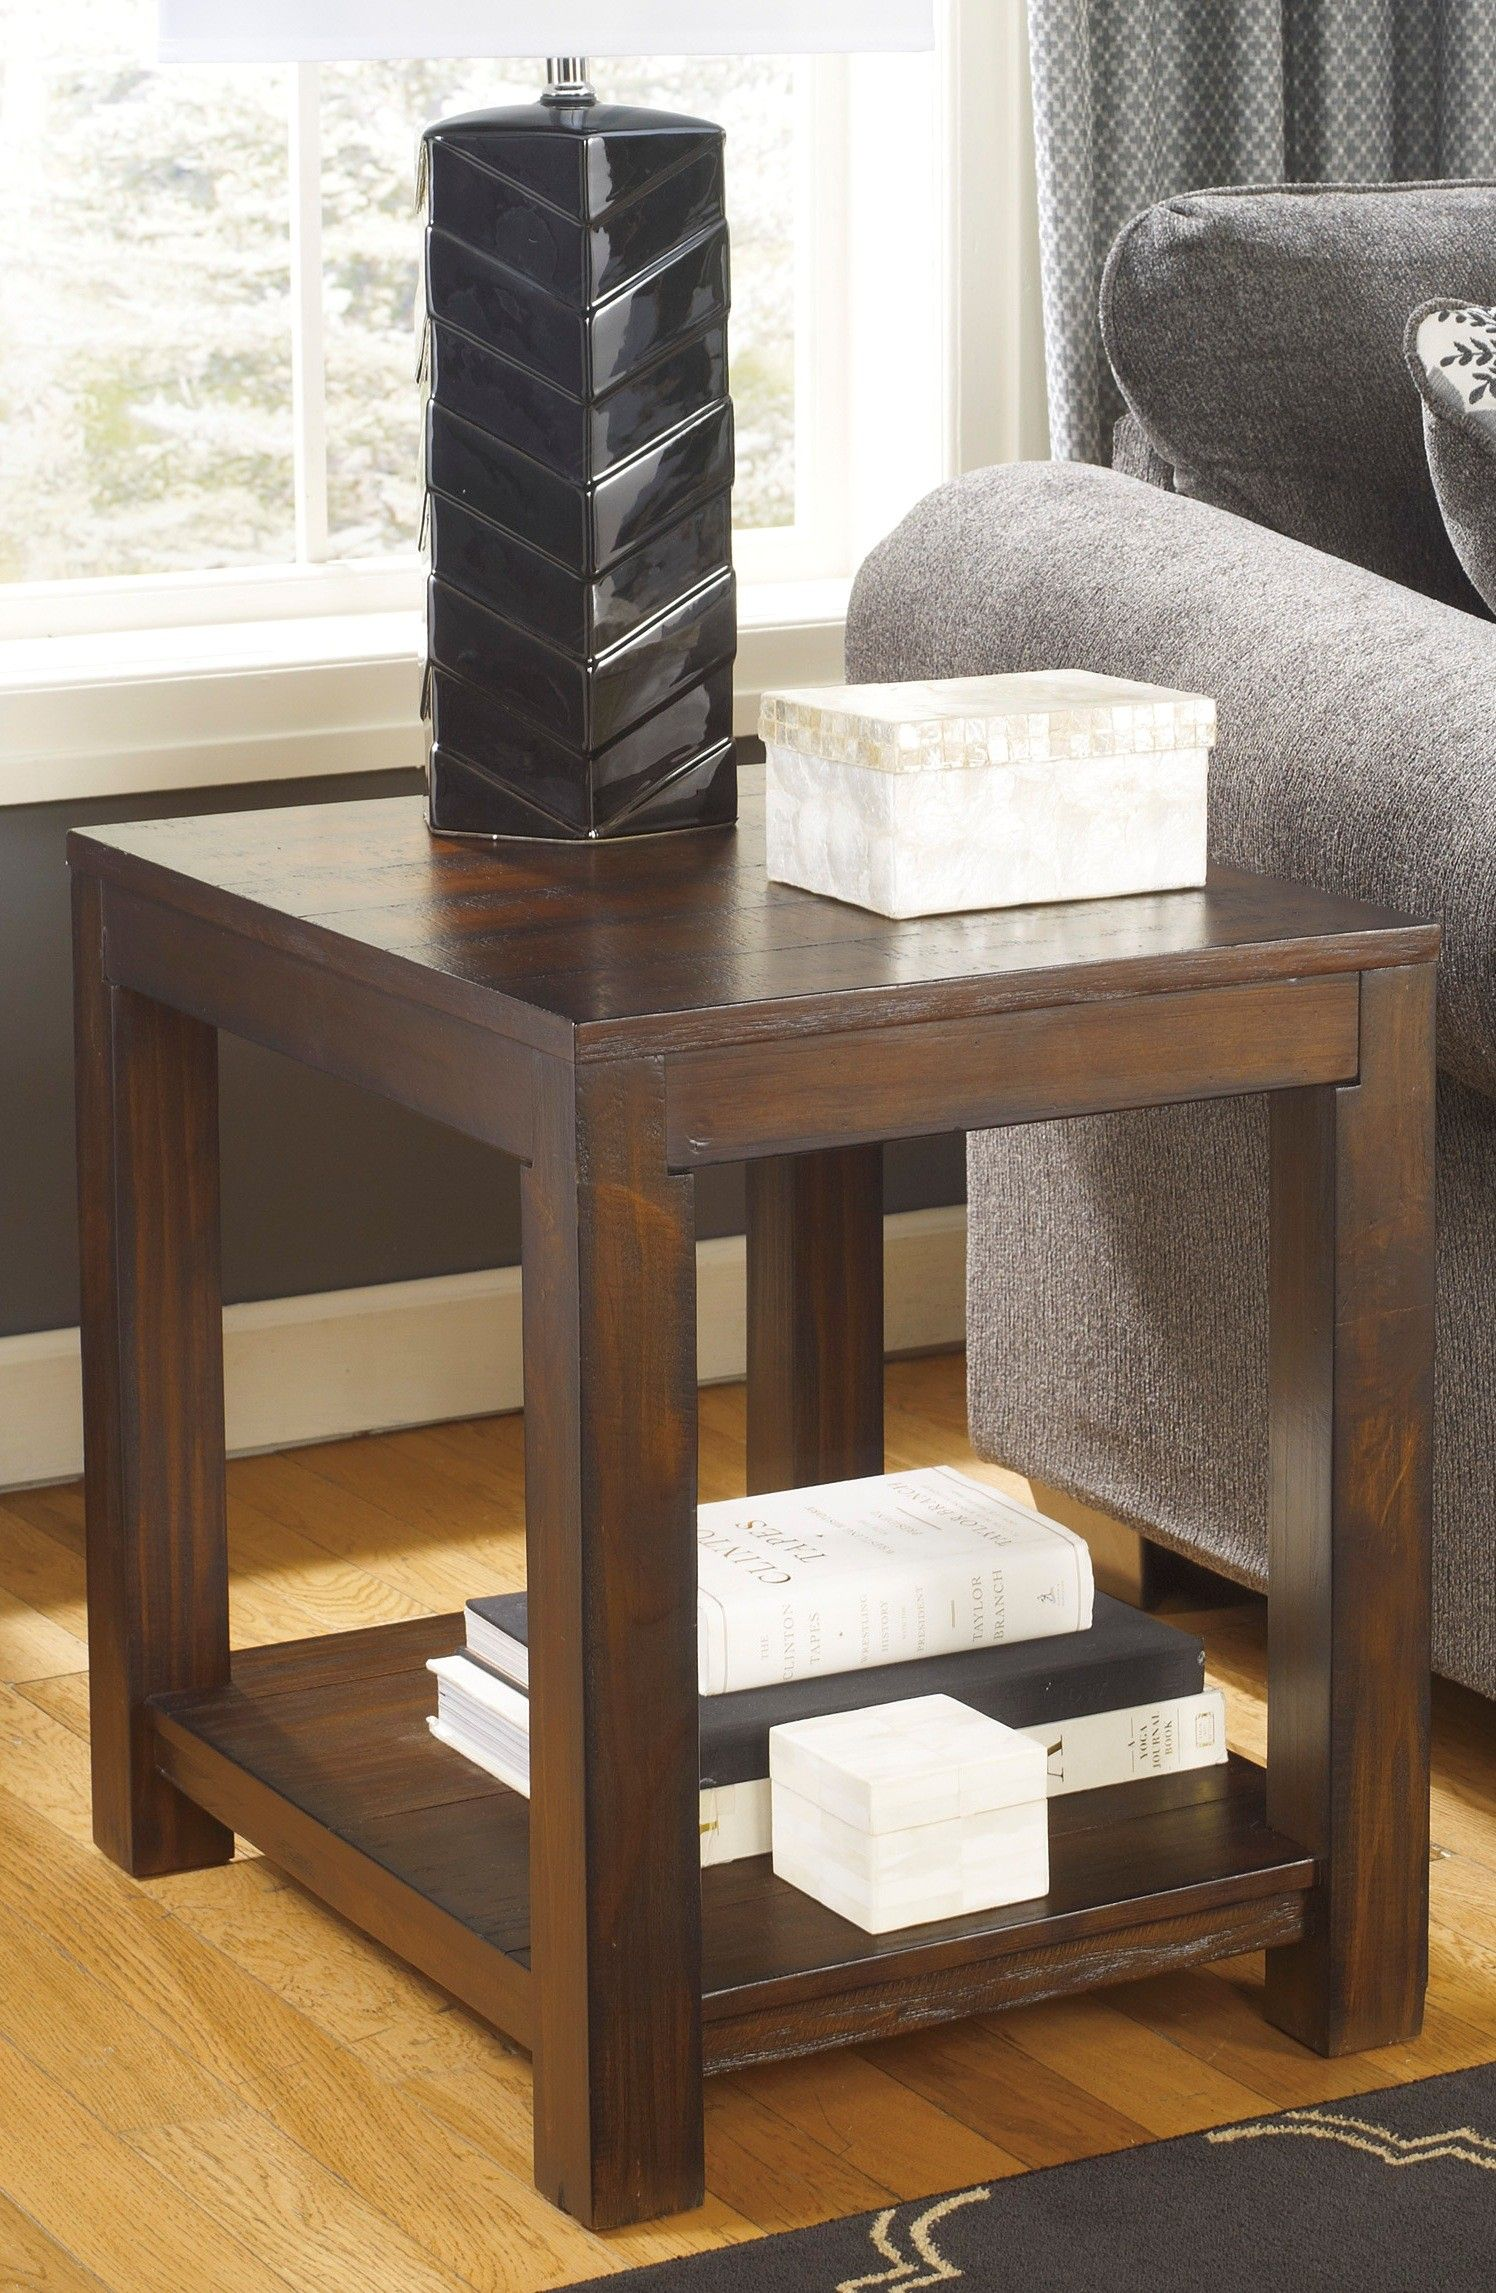 Awesome new furniture end tables 41 for interior decor home with furniture end tables · living room